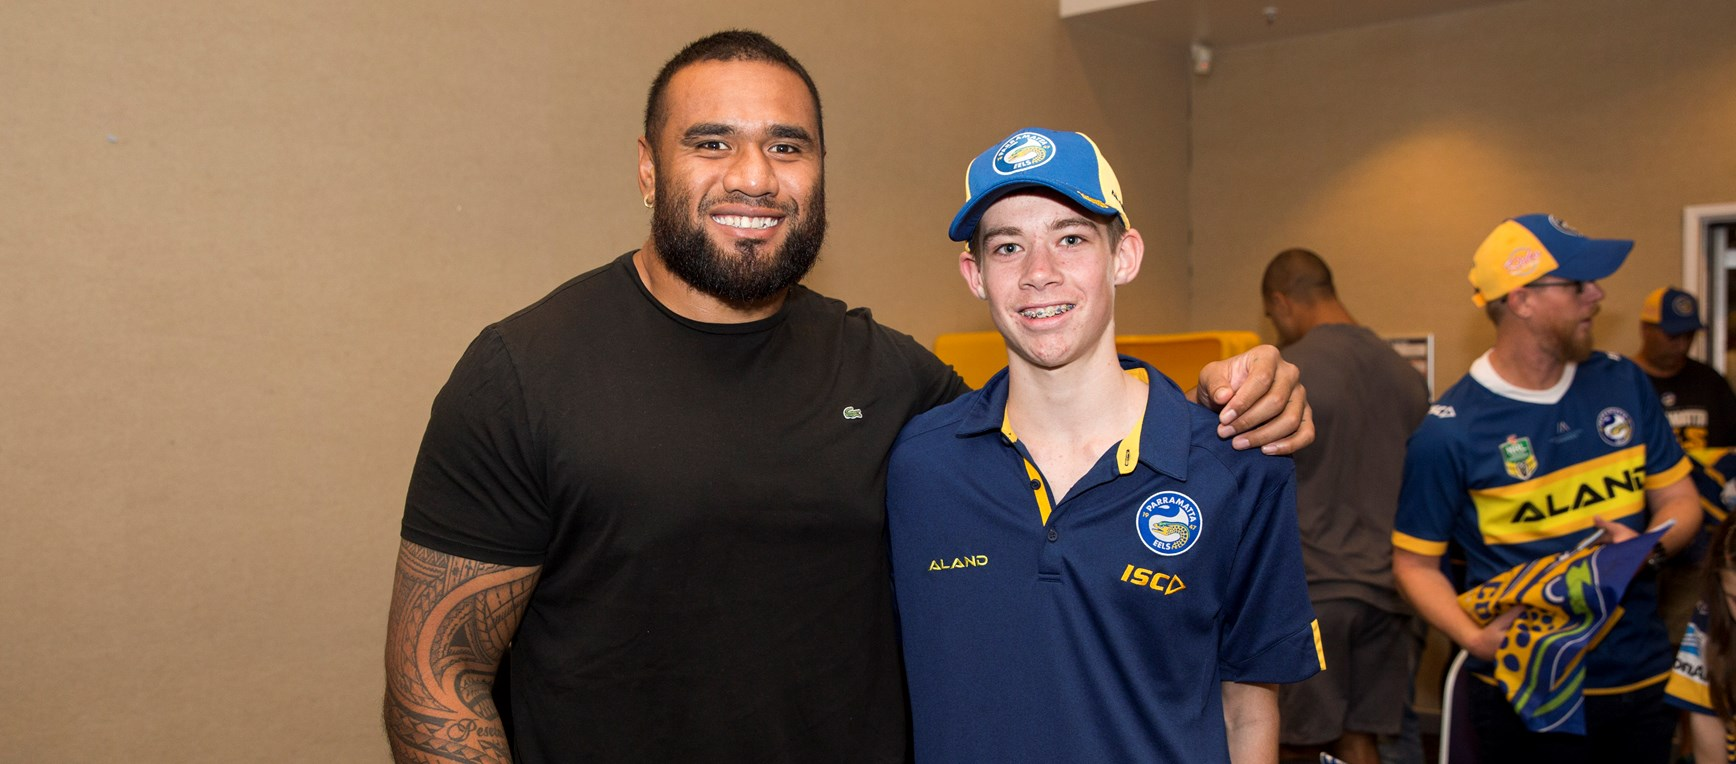 Blue & Gold Army welcome Eels to Brisbane